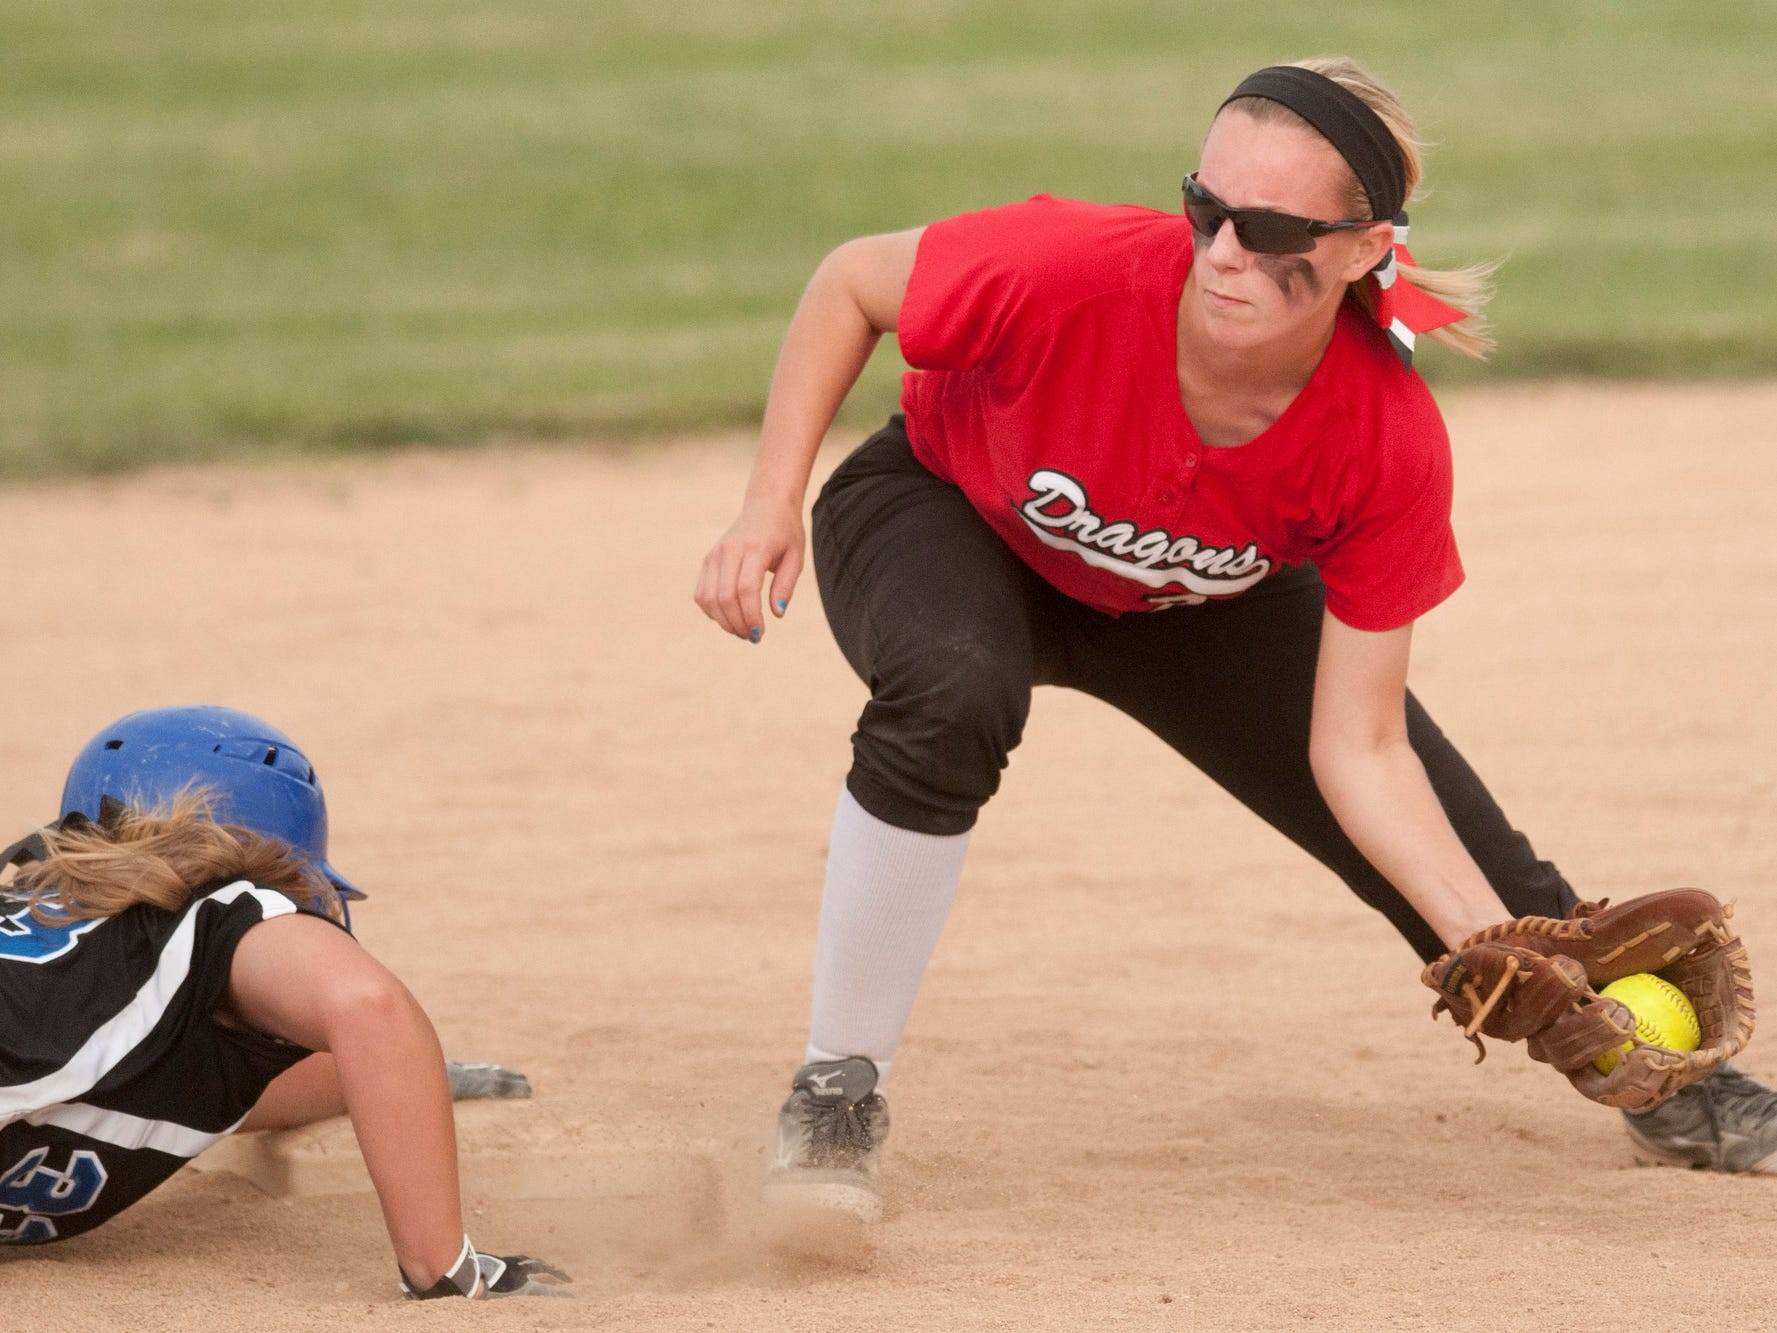 Franklin runner Shelby Taylor makes her way back to second base before the tag by New Palestine shortstop Adie Lorsung during the Sectional 13 softball championship game at Franklin Community High School, Wednesday, May 28, 2014.